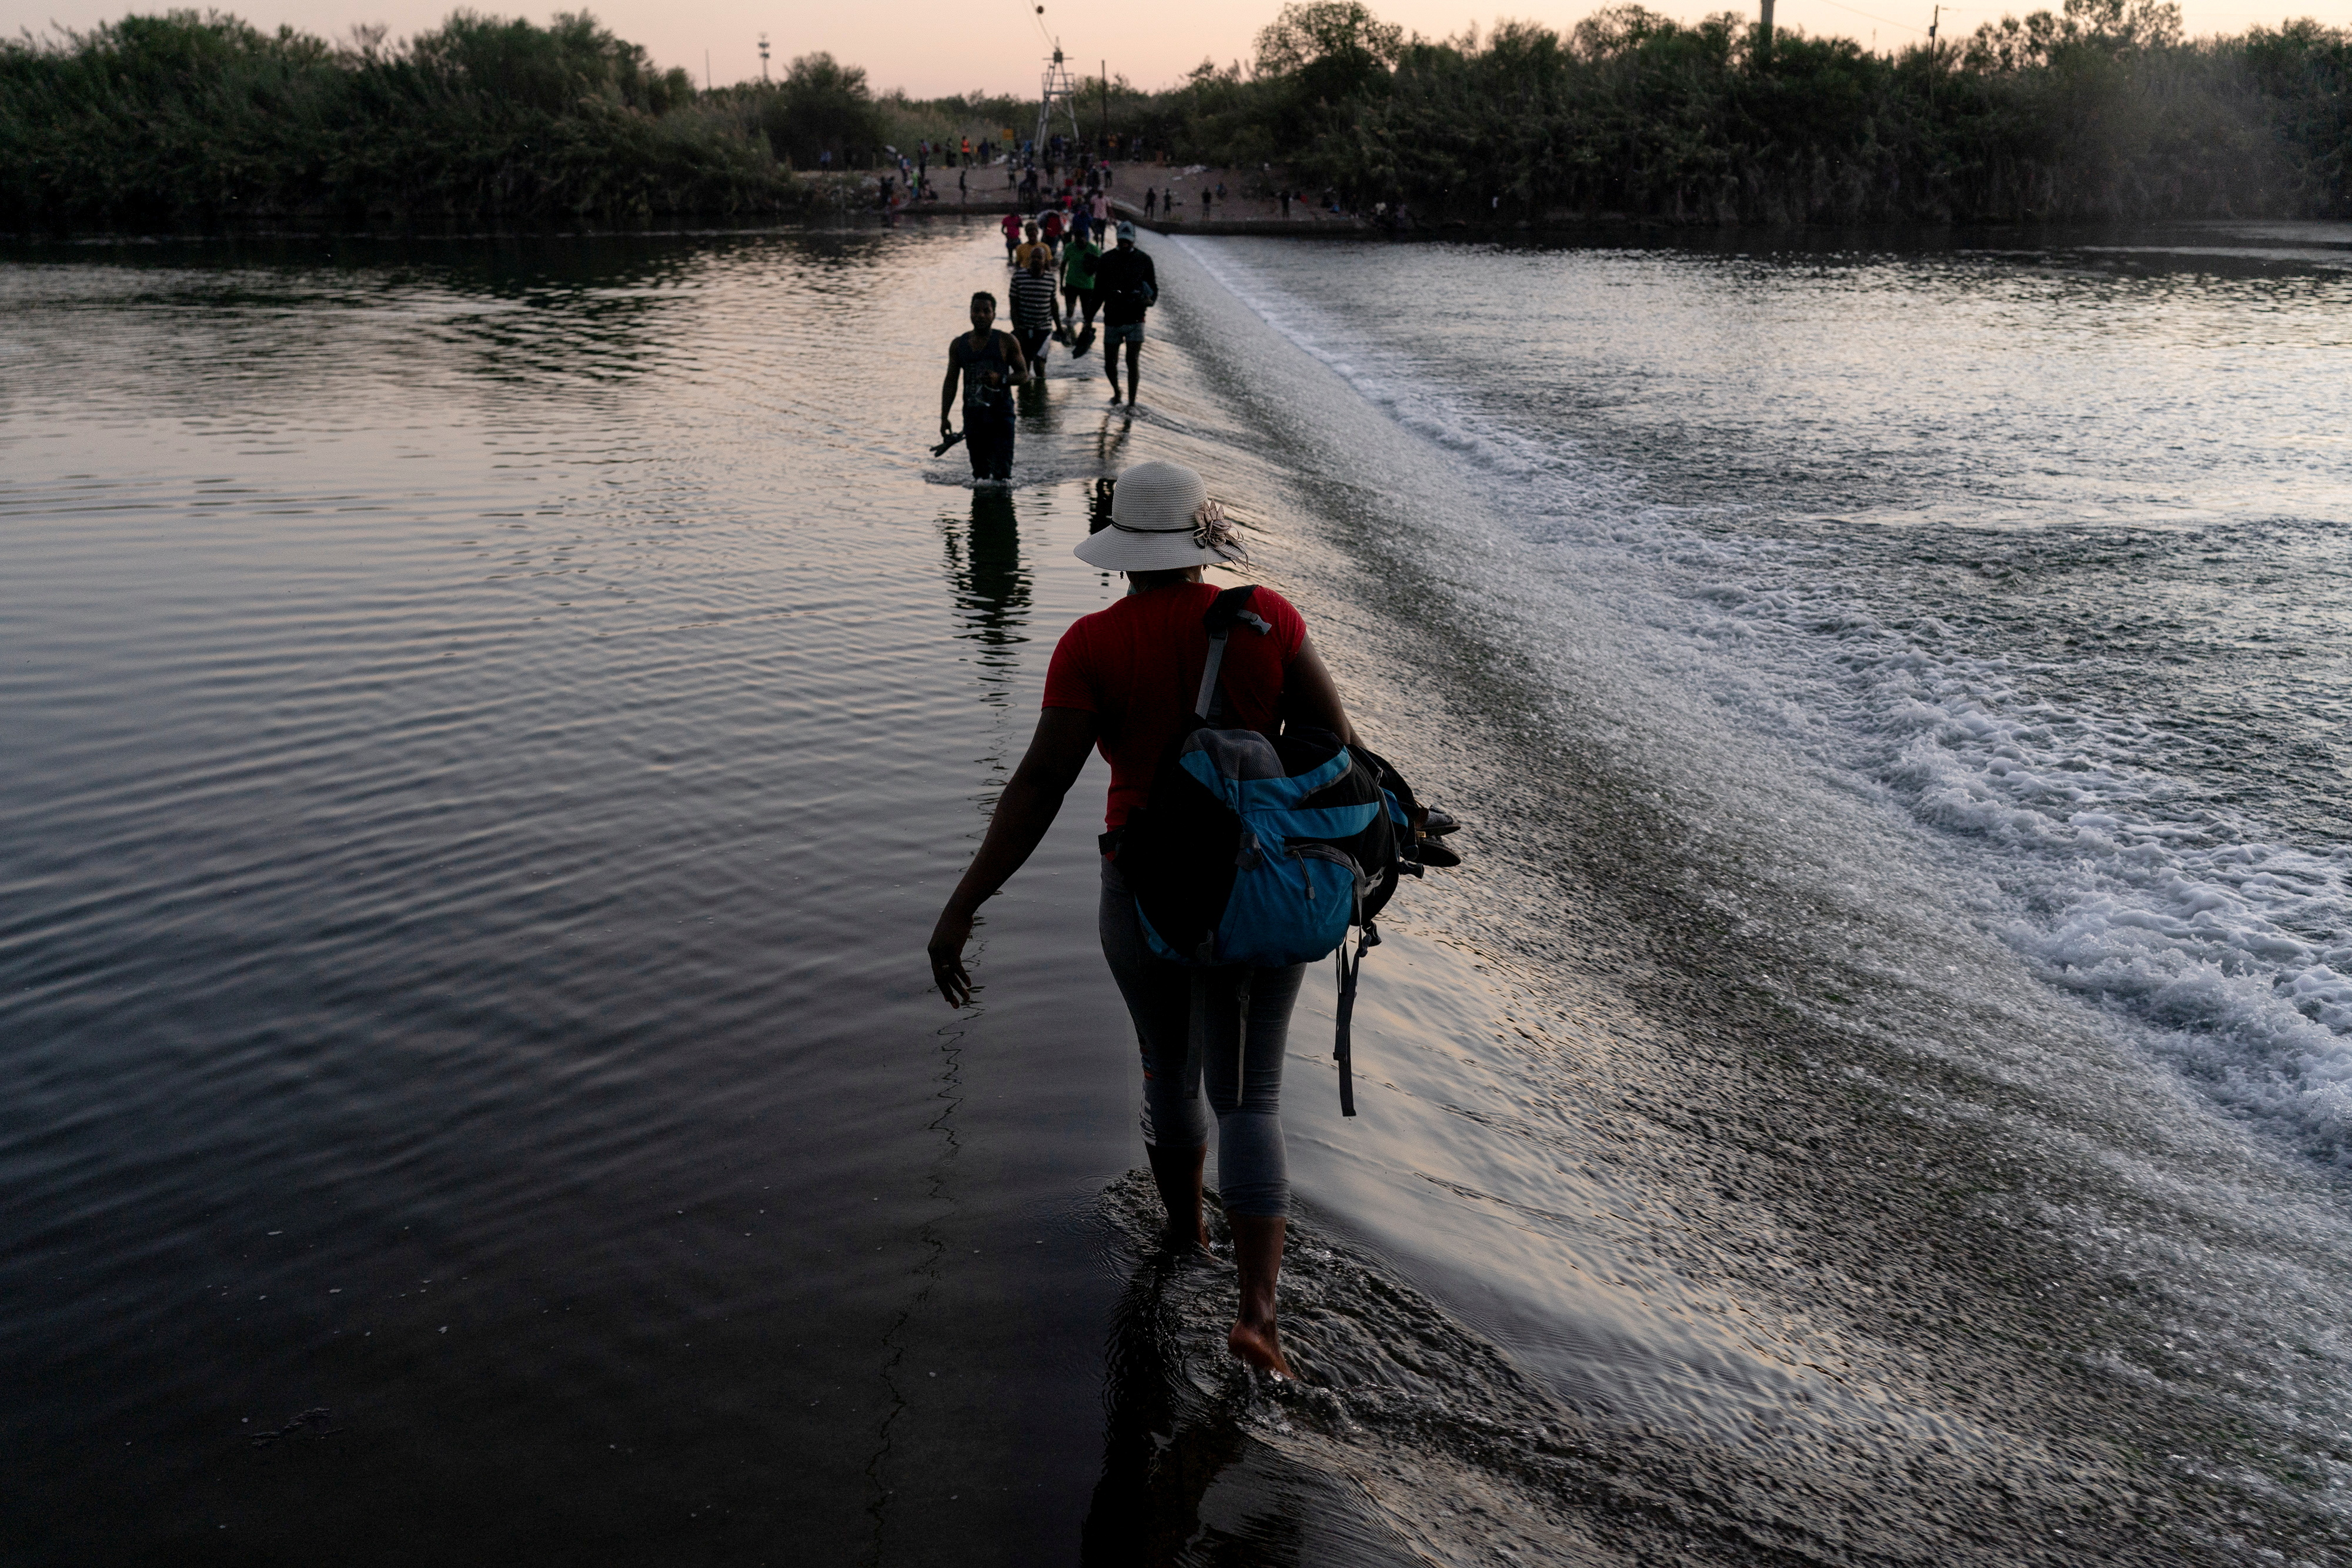 Migrants seeking asylum in the U.S. walk in the Rio Grande river near the International Bridge between Mexico and the U.S. as they wait to be processed, in Ciudad Acuna, Mexico, September 17, 2021. Migrants cross back and forth into Mexico to buy food and supplies. REUTERS/Go Nakamura